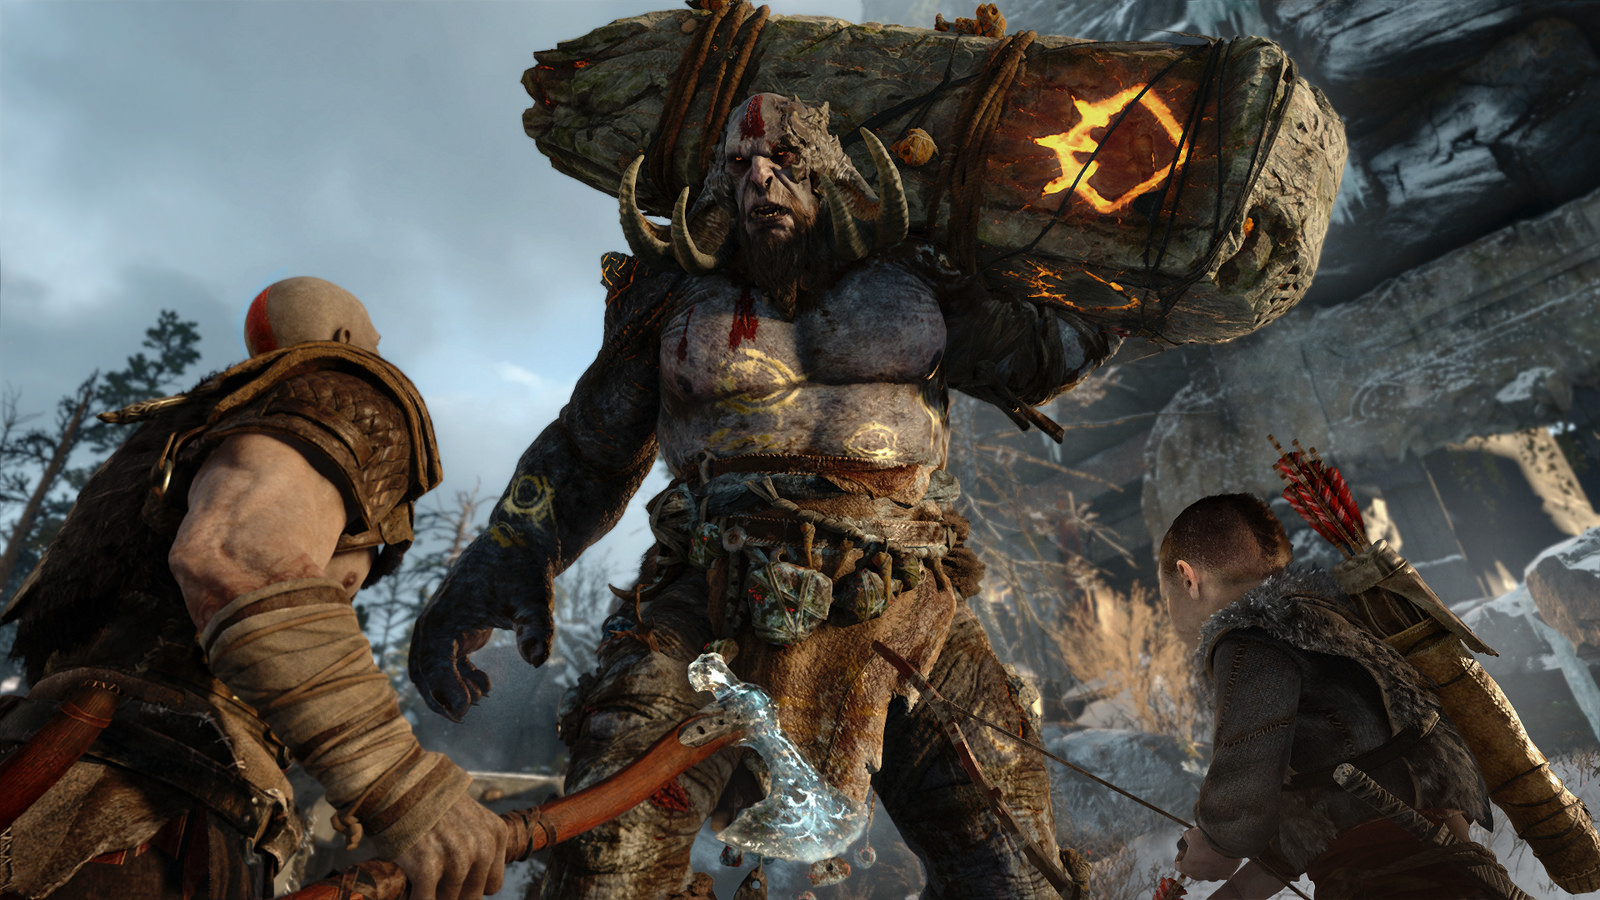 Kratos goes Norse - What will we see?